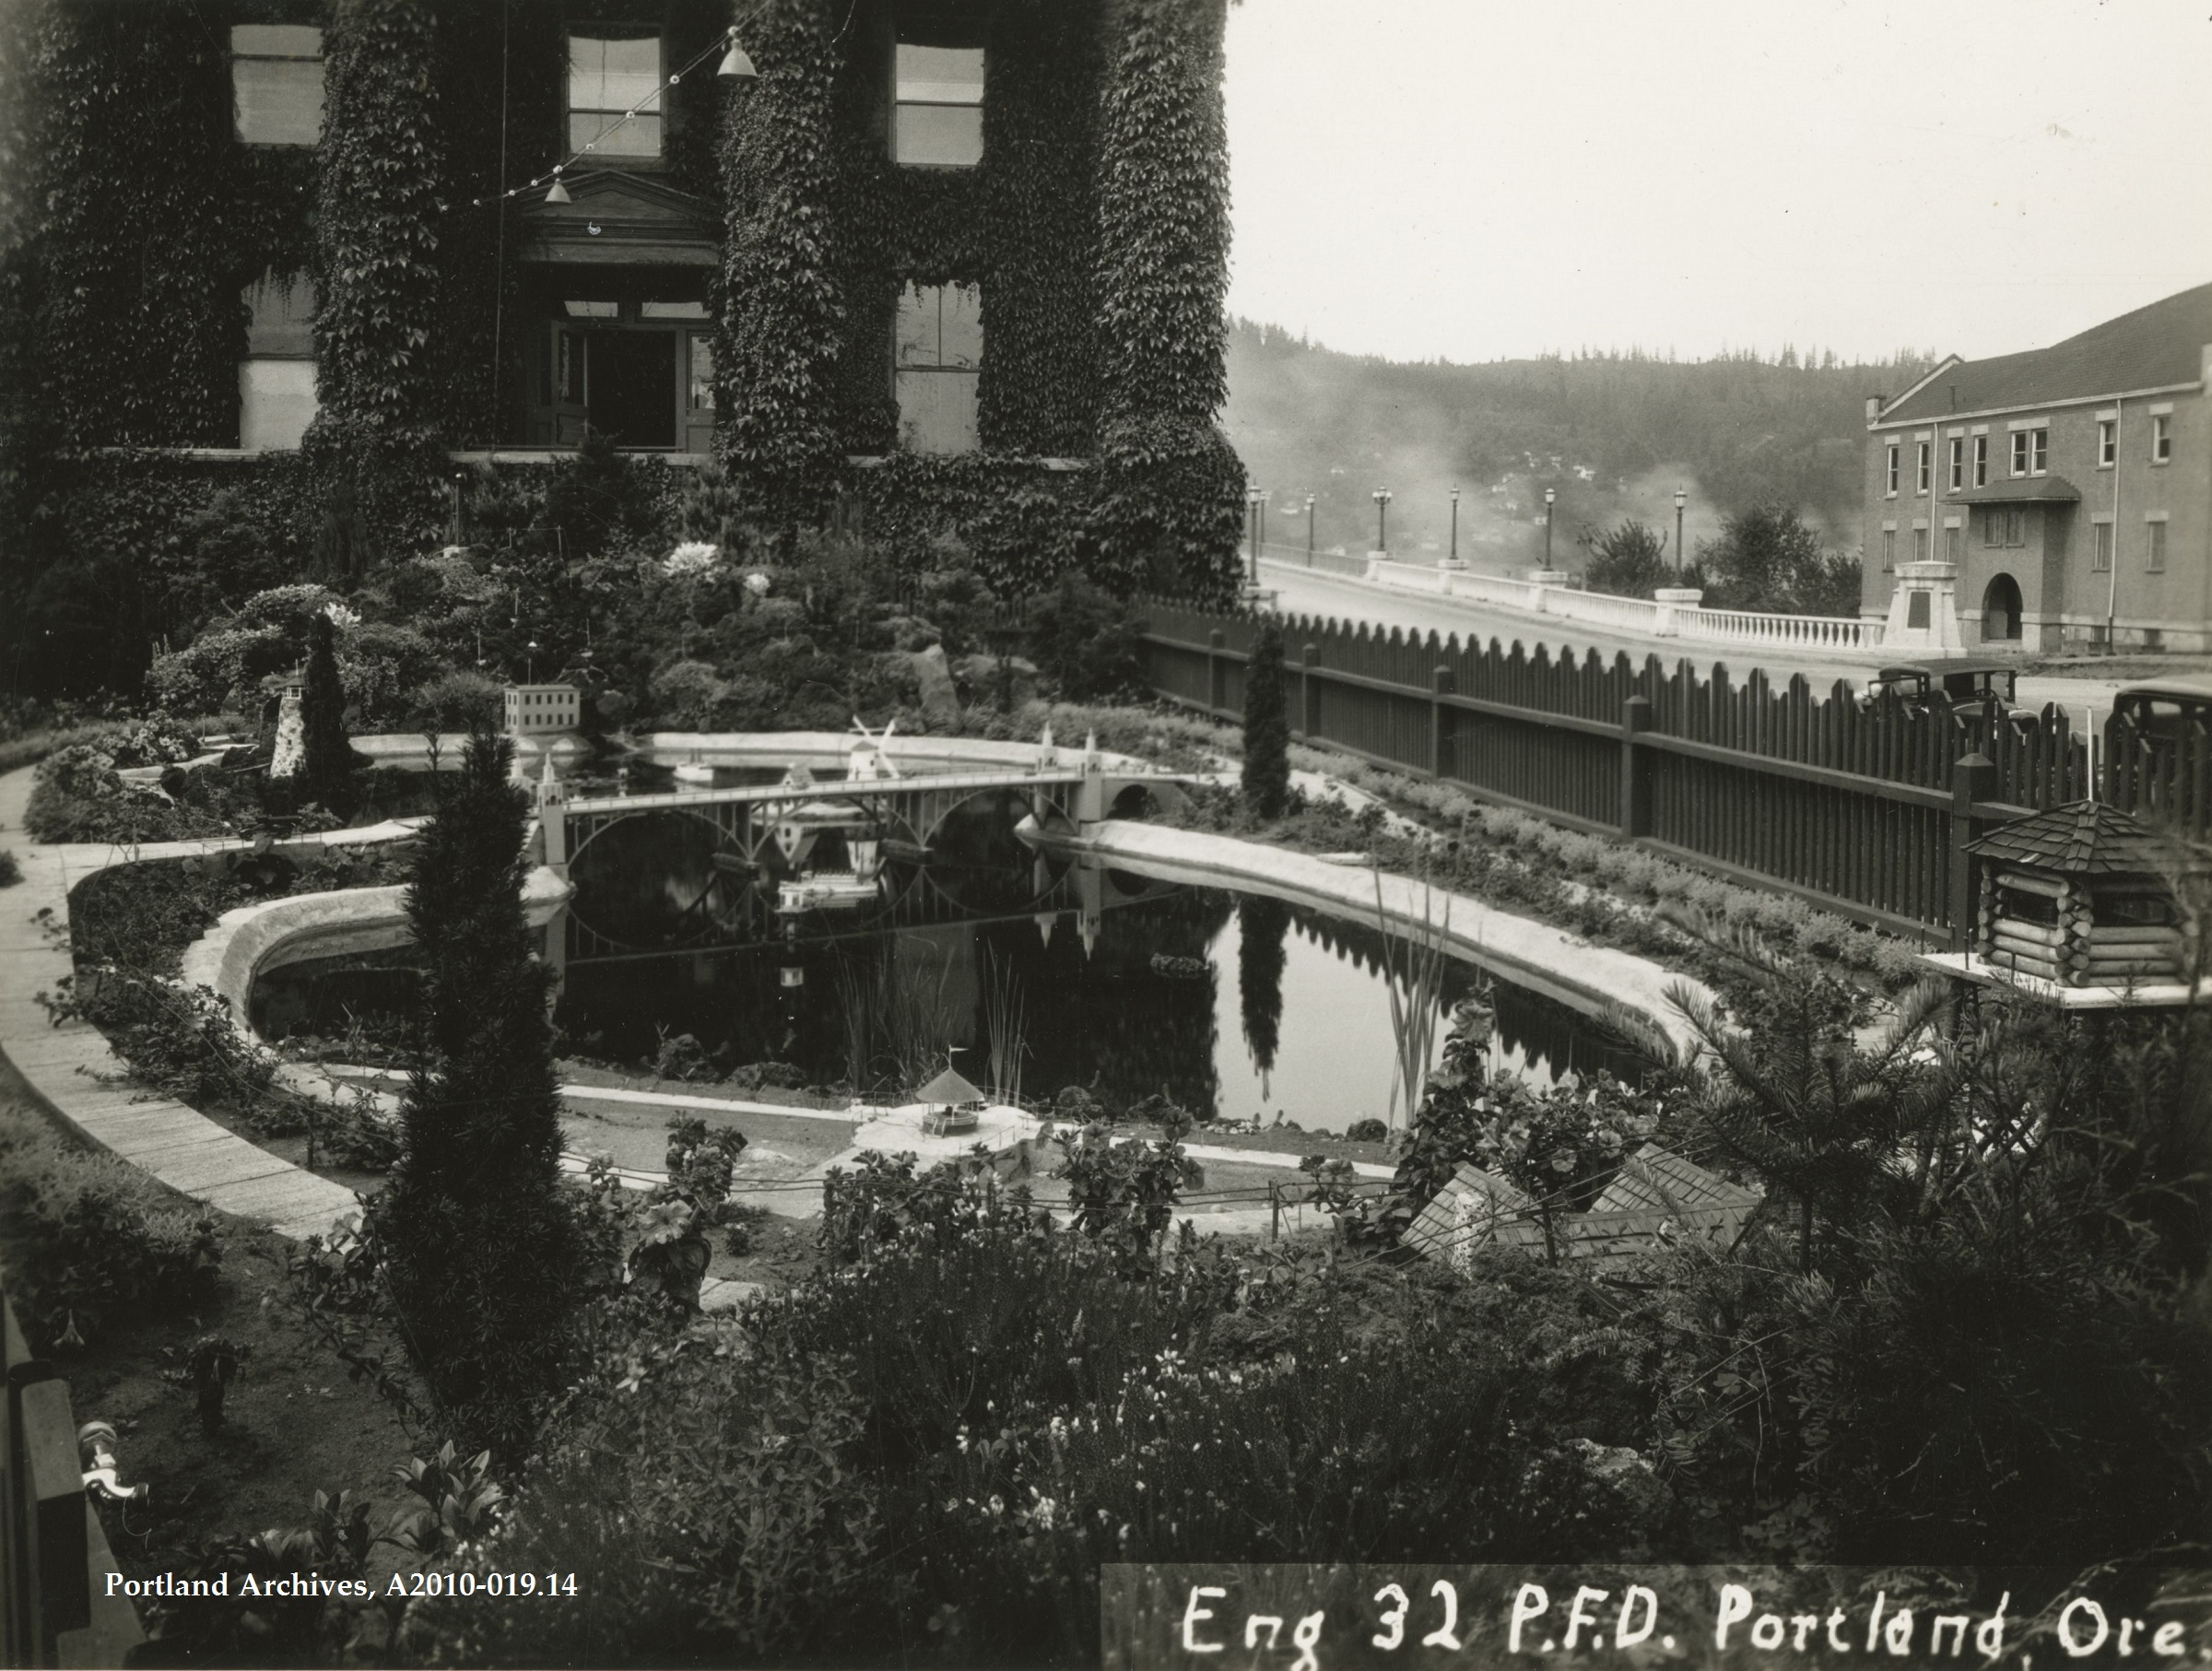 1934_station-32-firefighters-rock-garden-st-johns_a2010-019-14